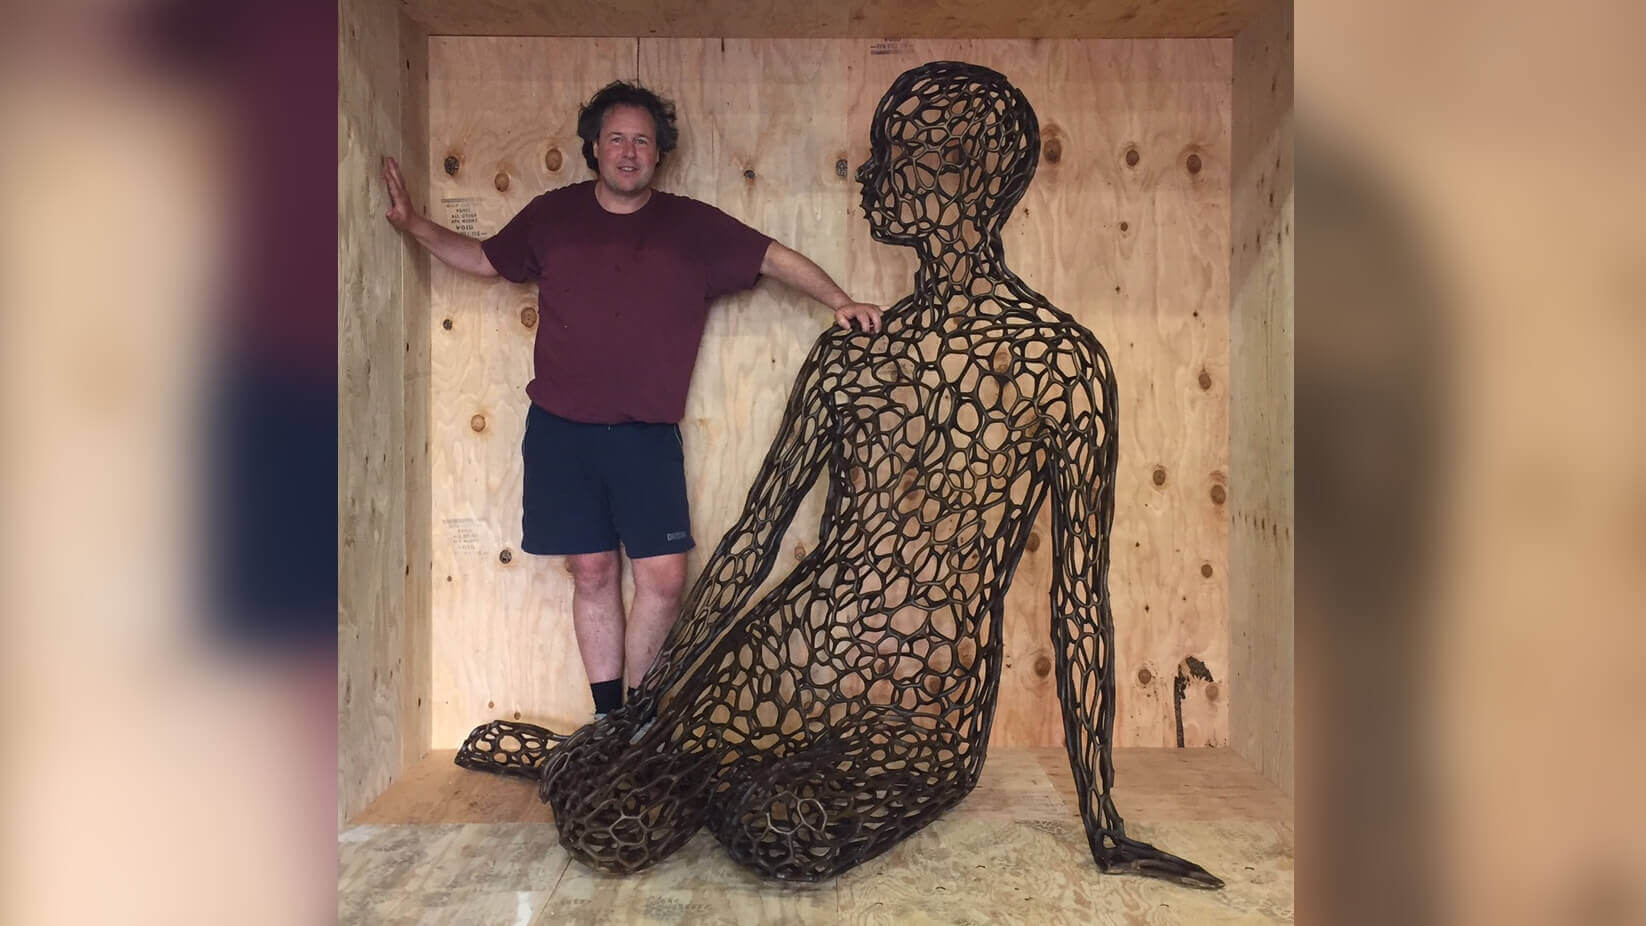 Artist Uses 3D Printing to Create Giant Metal Voronoi Sculpture | All3DP